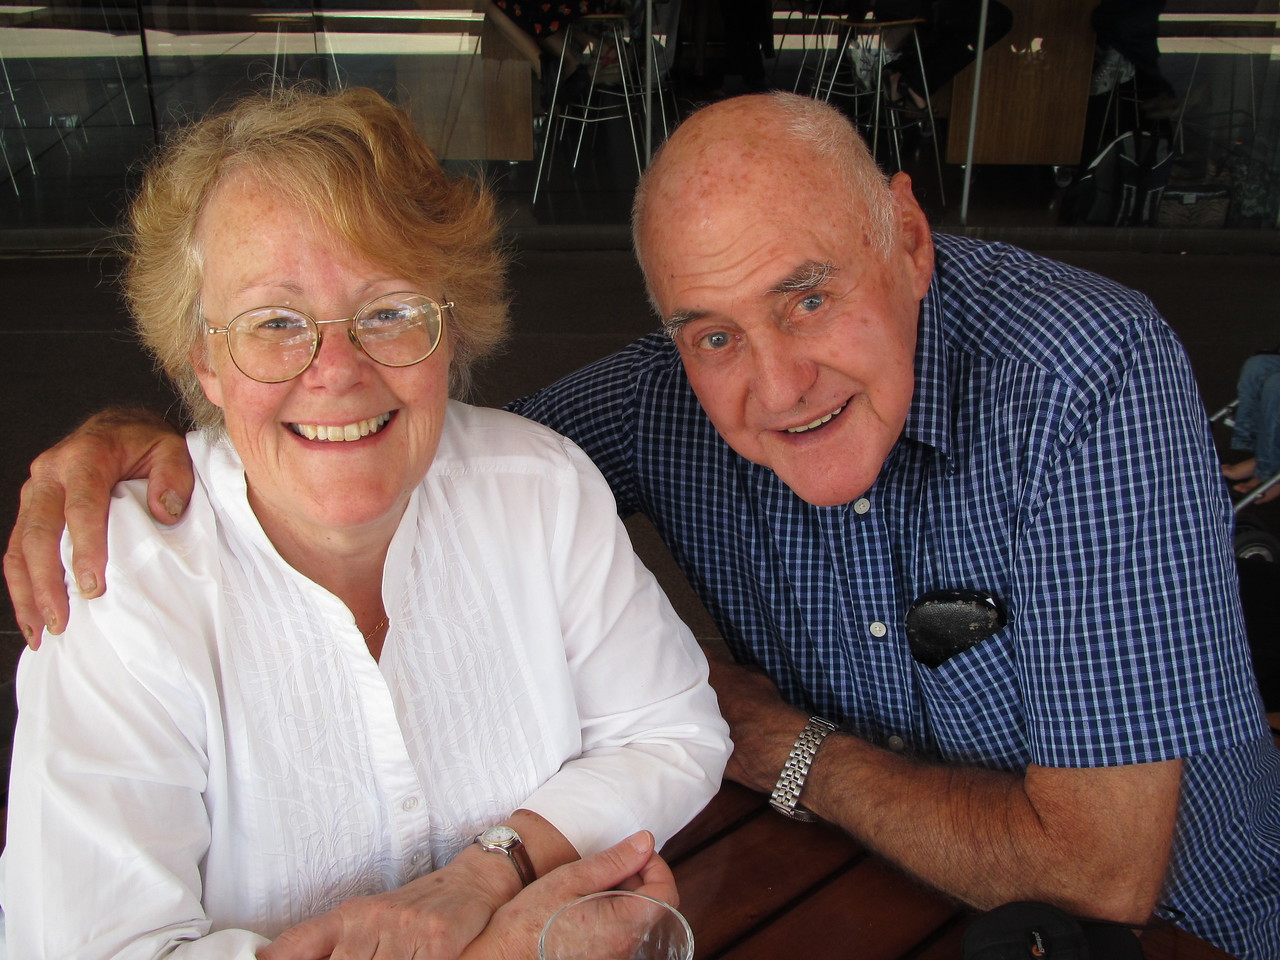 Harvey and Debbie, Circular Quay, Sydney, 2012